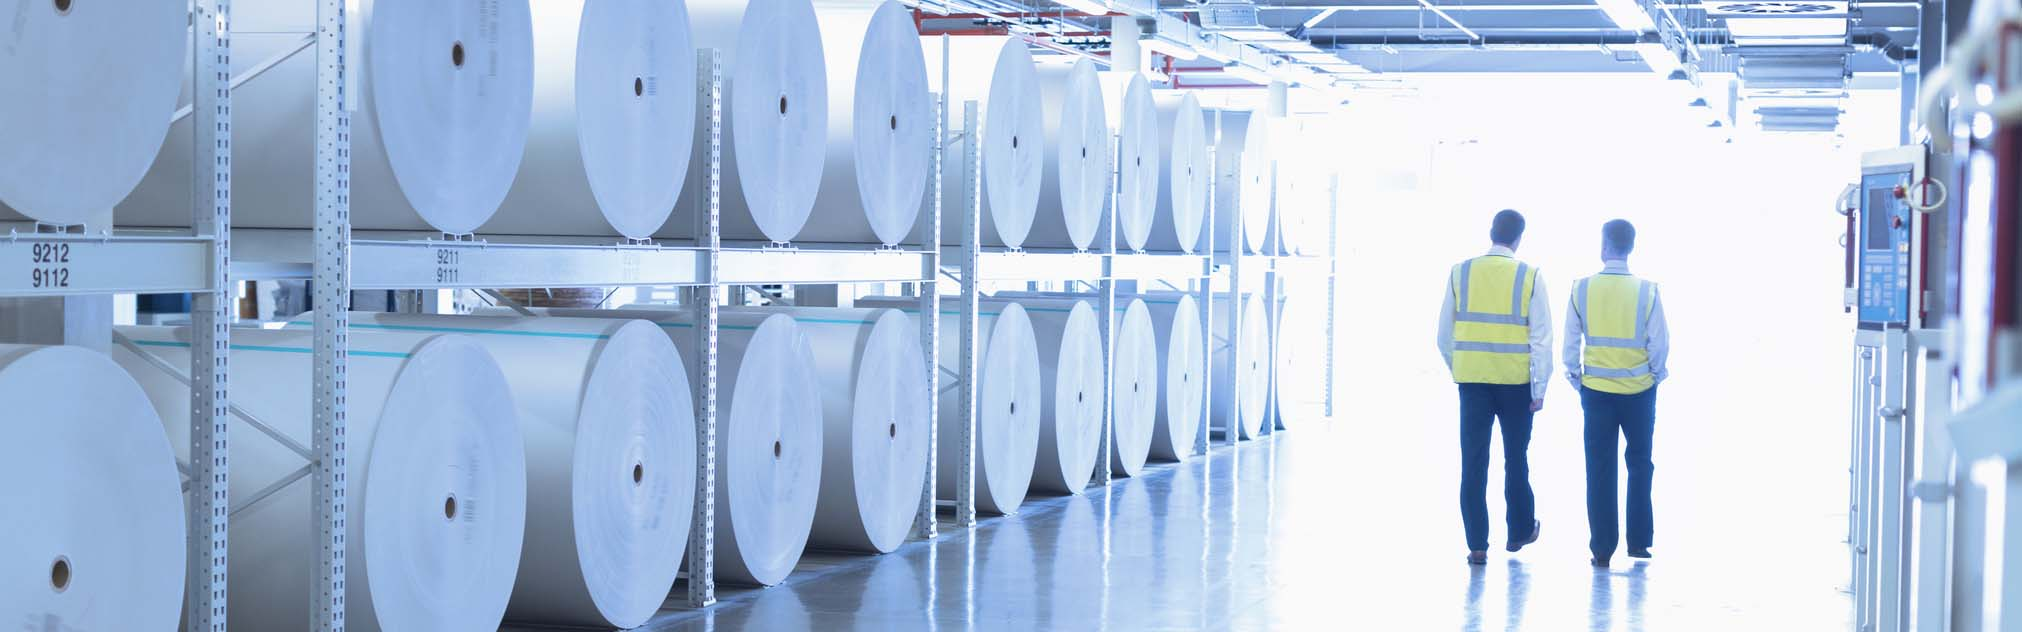 Pulp and paper mill workers walk down a hall next to reams of paper.